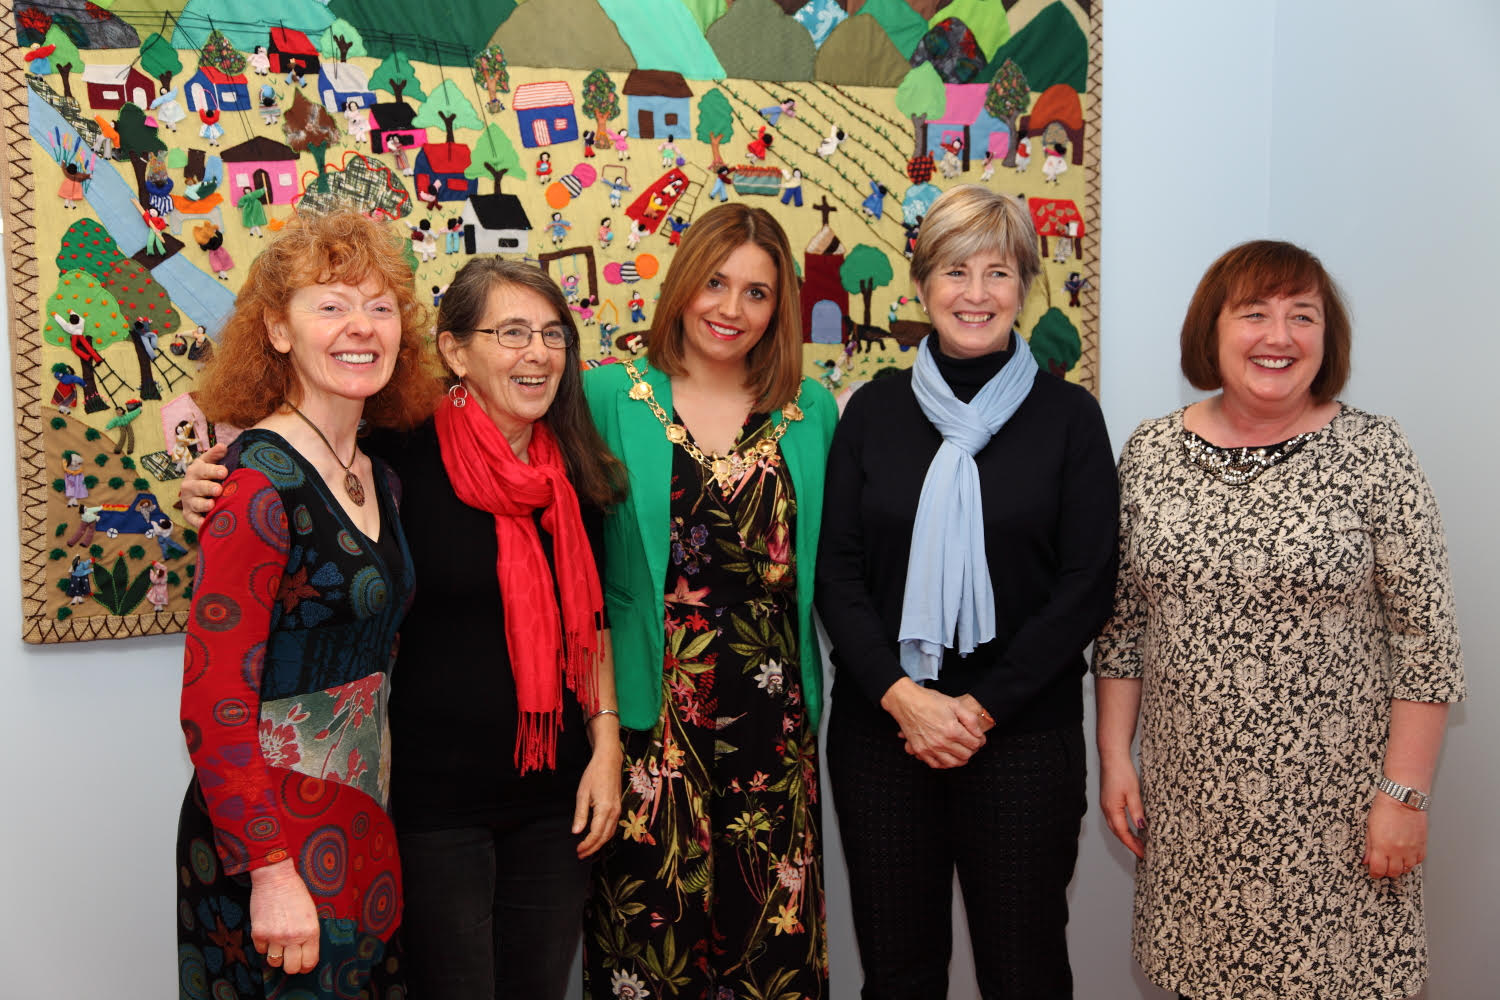 (L-R) Breege Doherty, Roberta Bacic, Councillor Elisha McCallion - Mayor of Derry City & Strabane District Council, Professor Gillian Robinson and Margaret Edwards at the launch of the new Conflict Textiles website, 19th Nov, 2015. (Photo: Martin Melaugh)